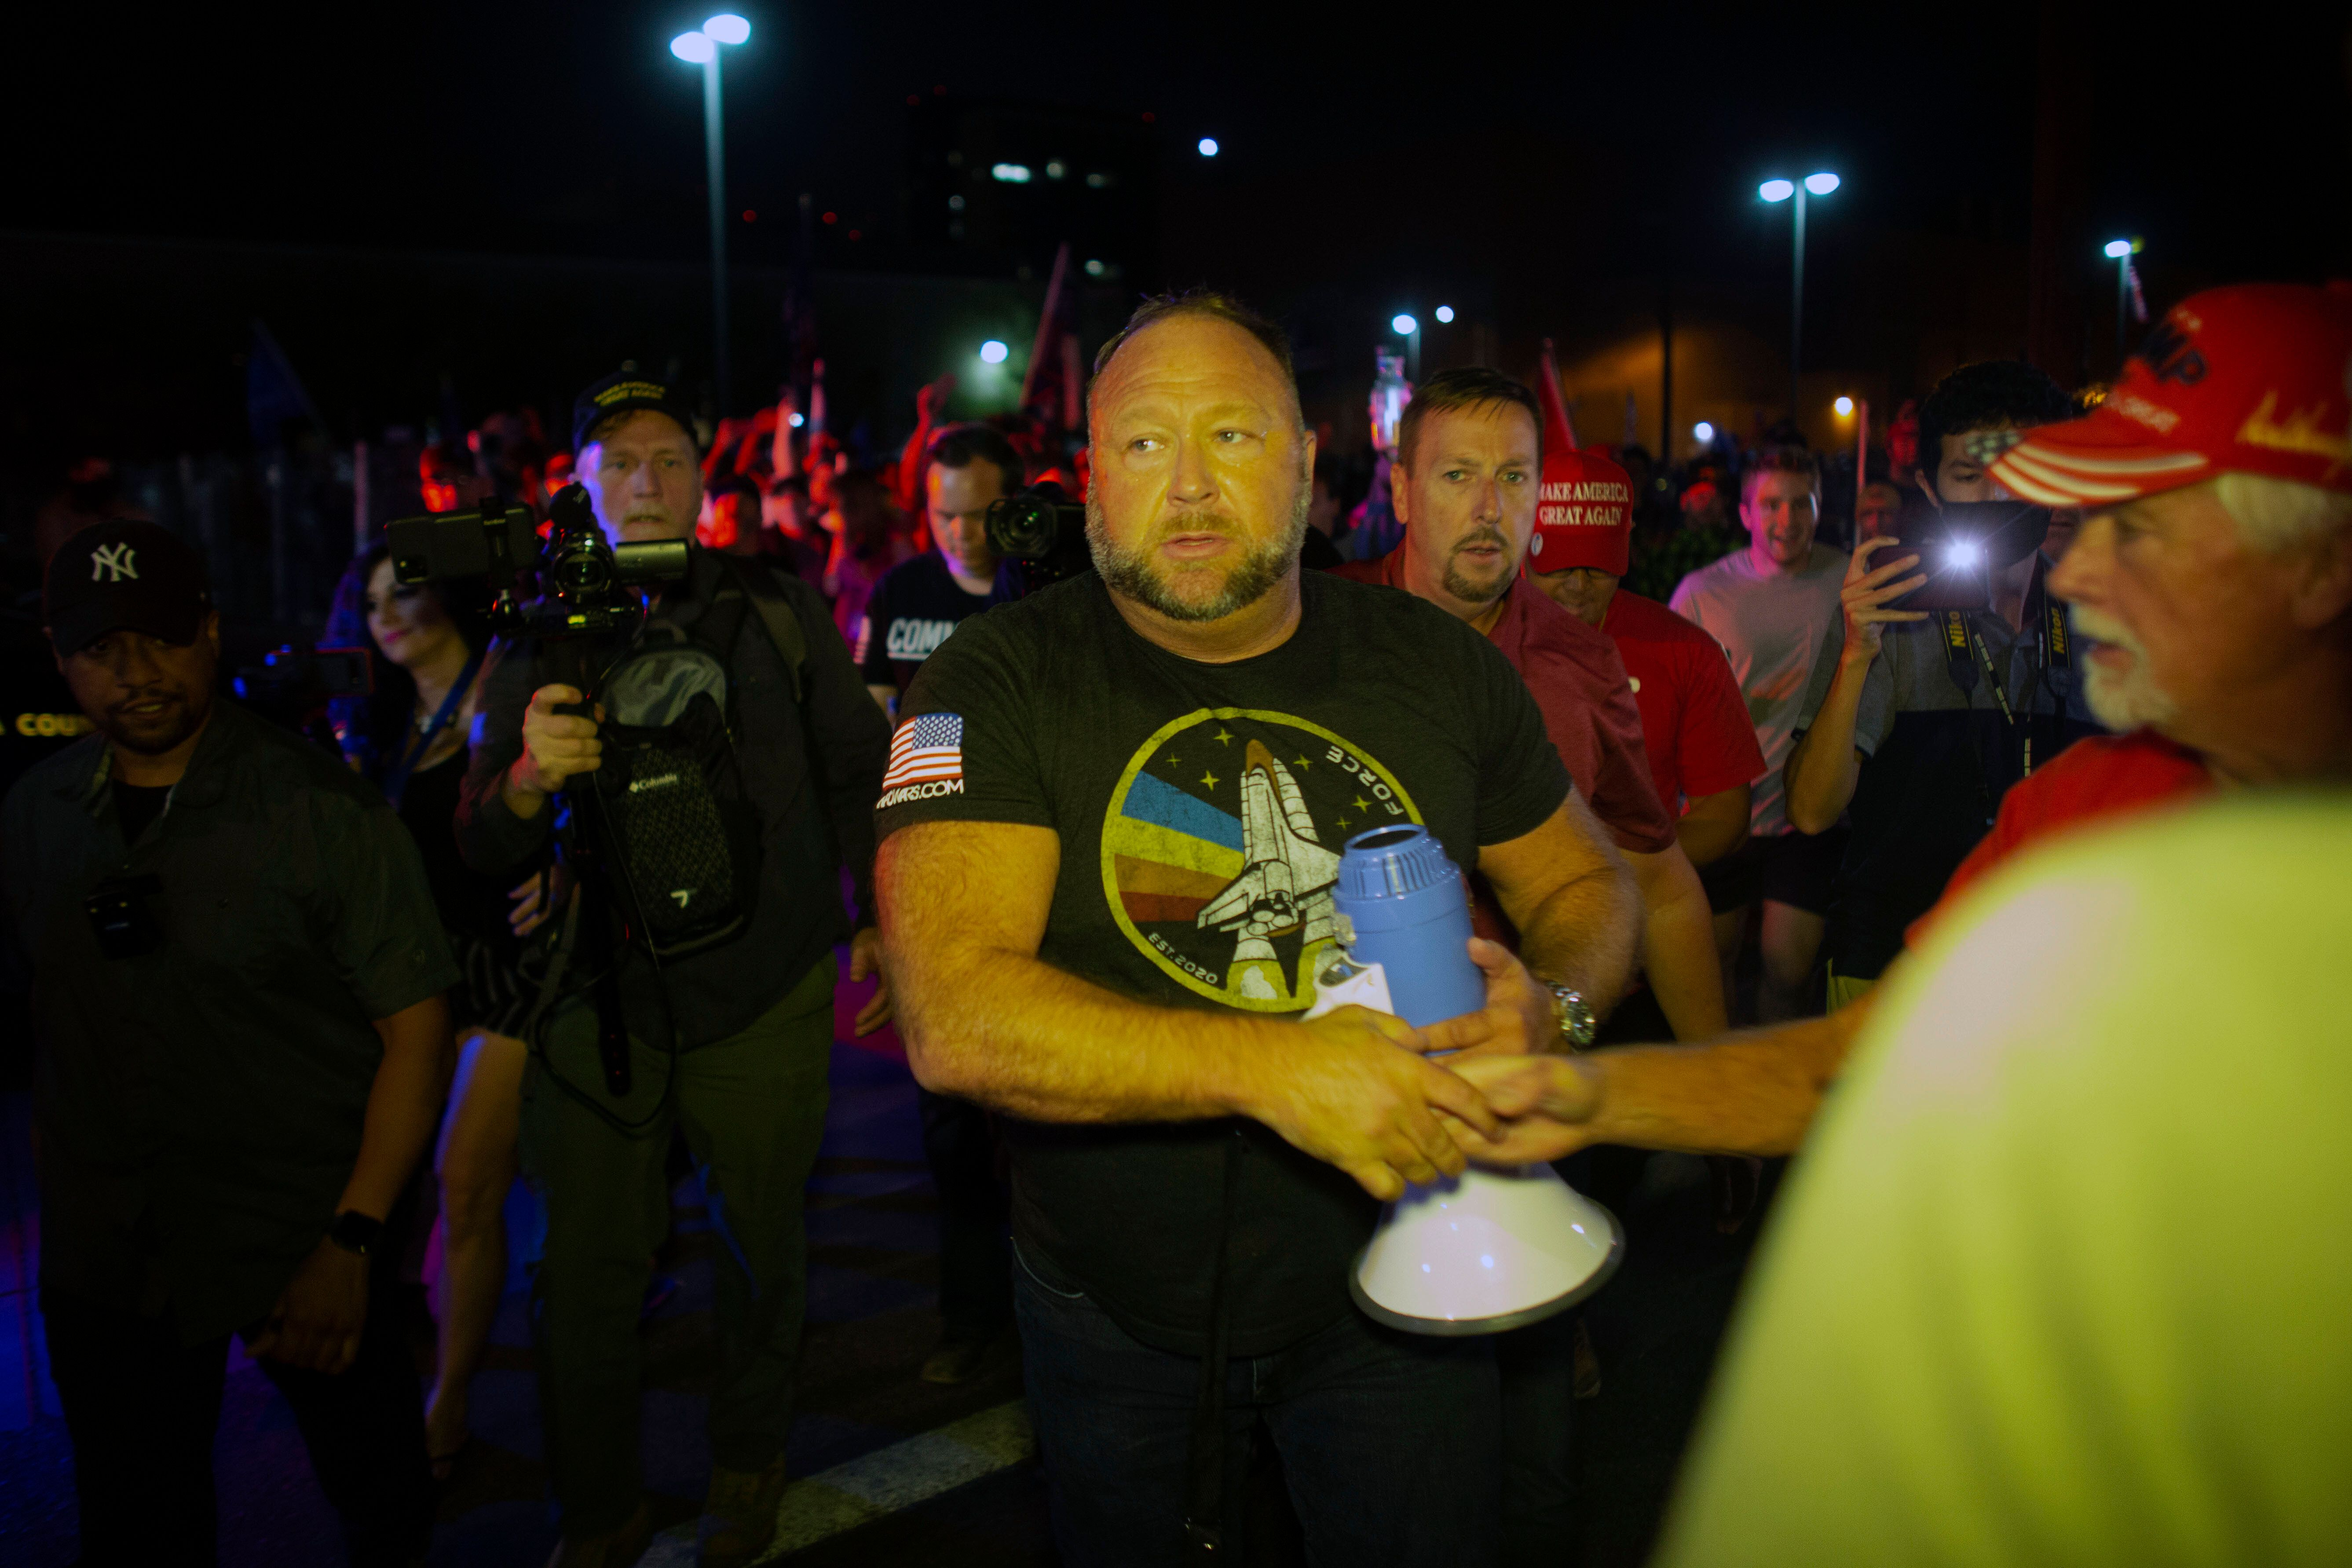 After making a violent speech outside the elections center on Thursday night, far-right radio host Alex Jones returned the ne